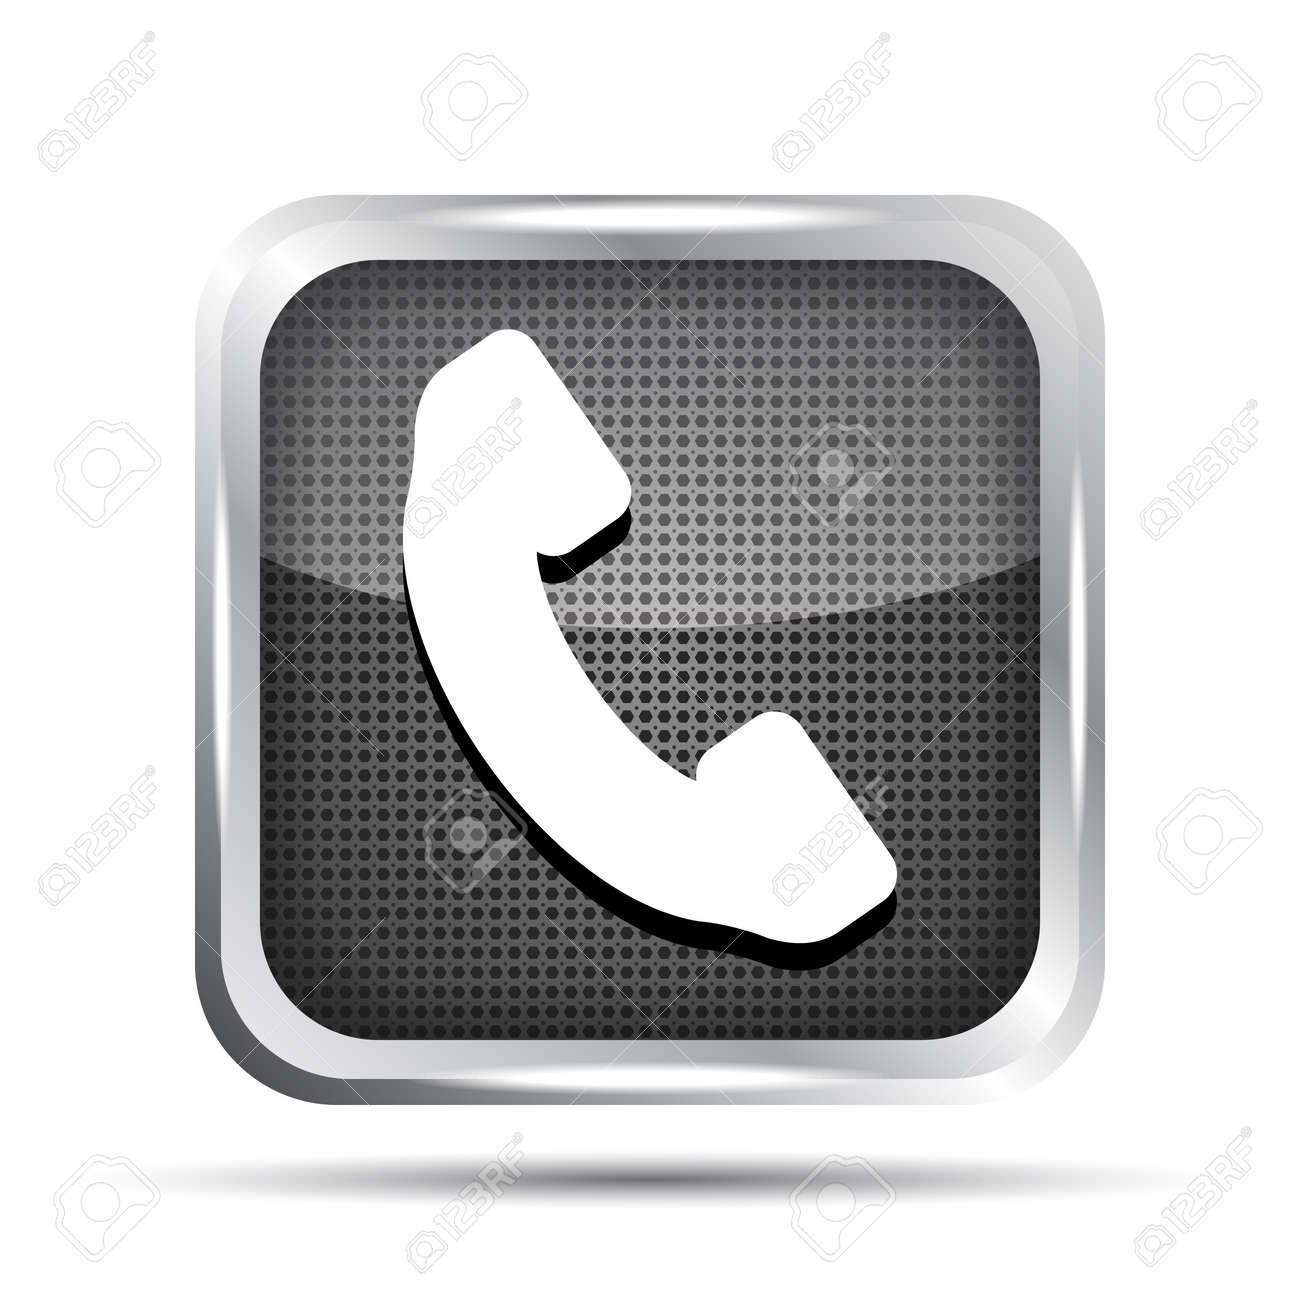 metallic phone button icon on a white background Stock Vector - 19619764